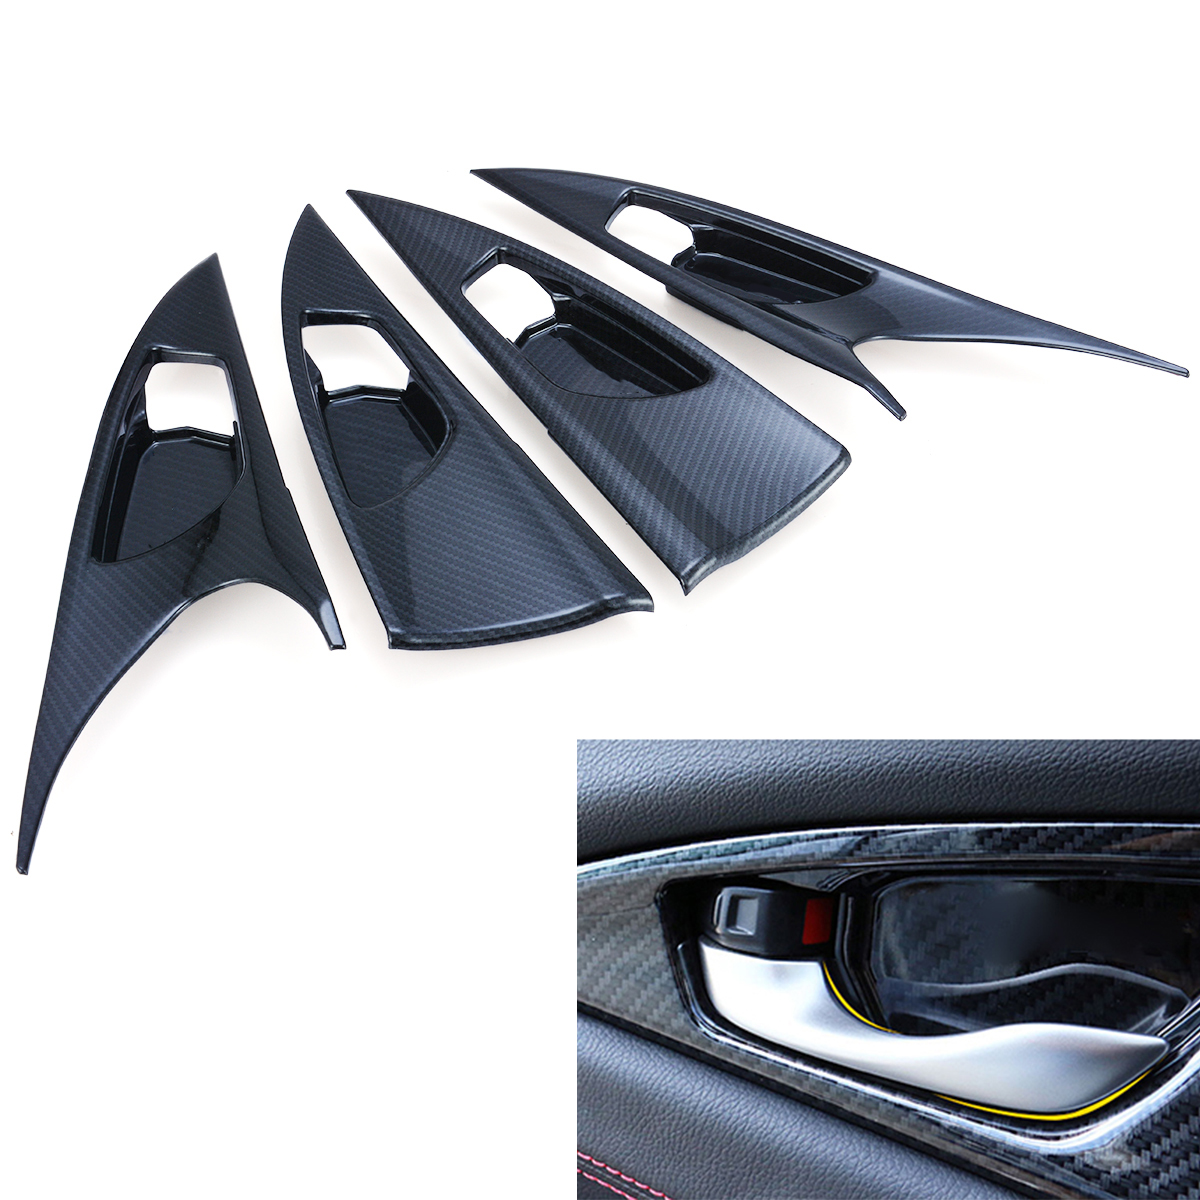 4PCS/SET Carbon Fiber Style Car Inner Door Handle Bowl Panel Cover For Honda Civic 10th Sedan 2016 Hatchback 2017 Car Styling carbon fiber car leather car central armrest console cover for honda civic 10th 2016 2017 2018 accessories